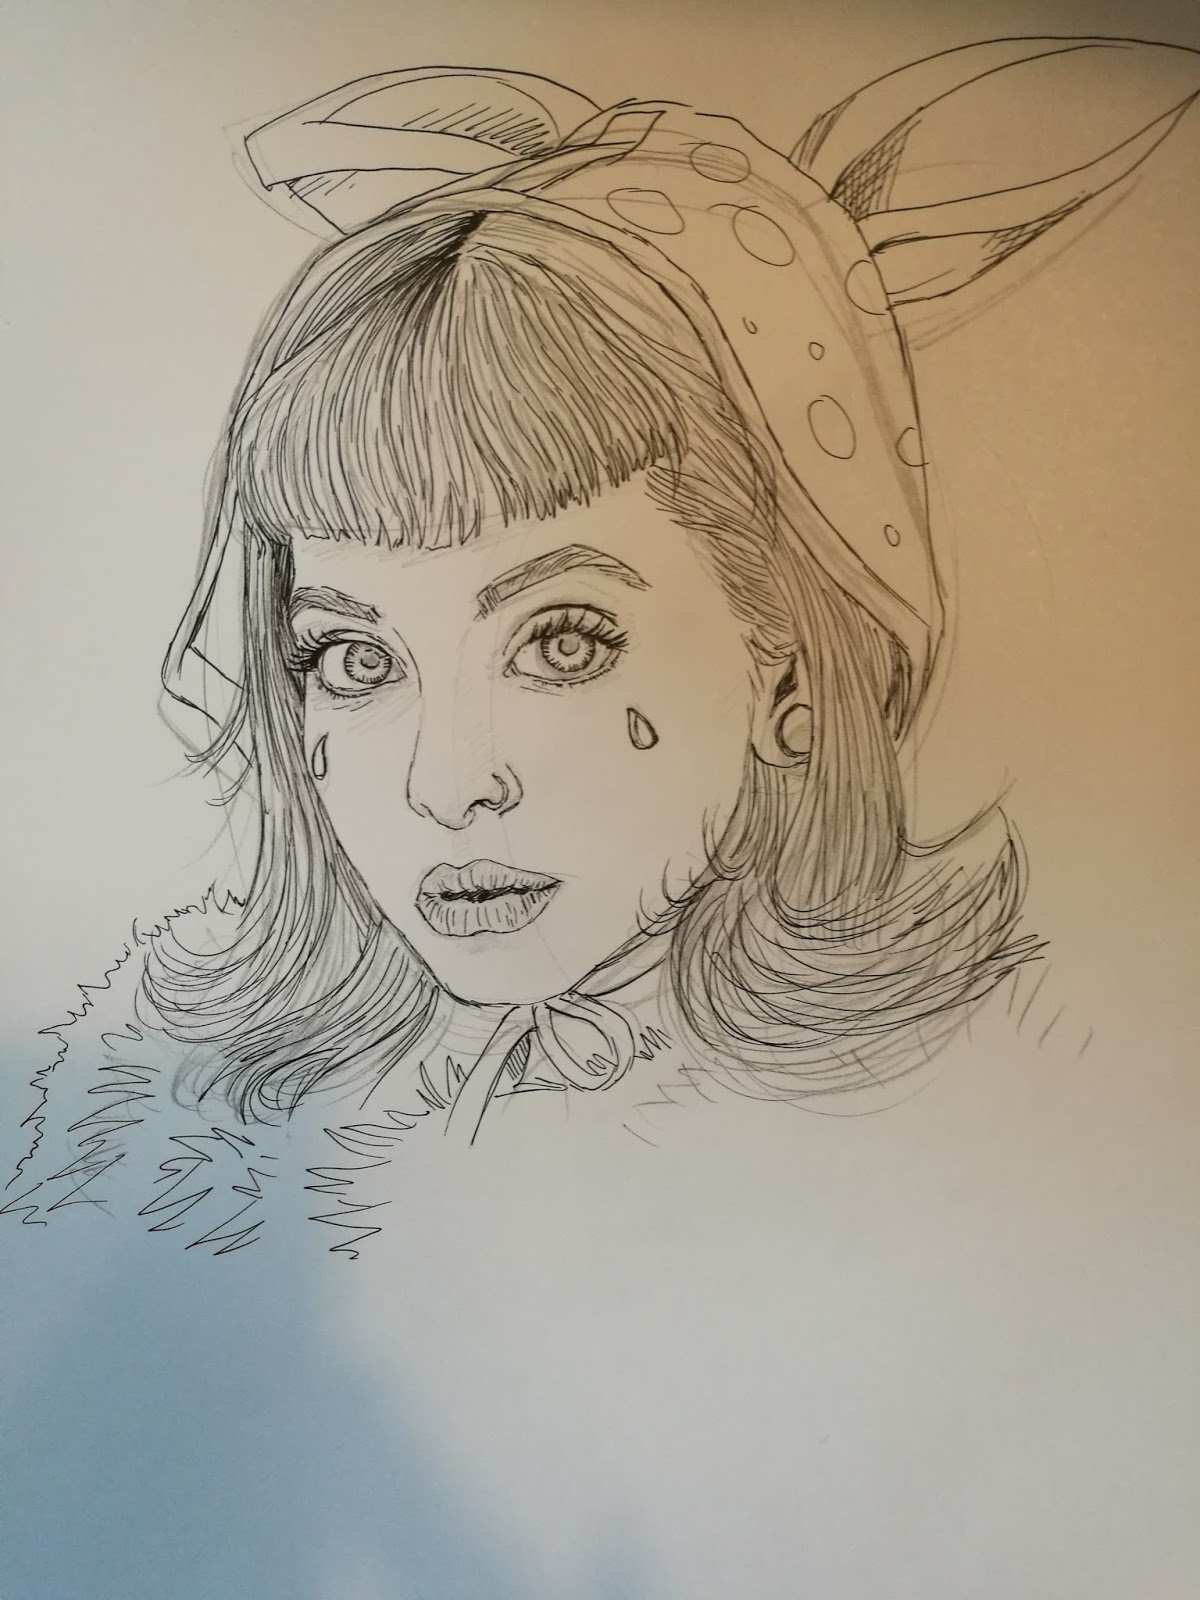 Para Colorir Melanie Martinez Related Keywords Suggestions Para